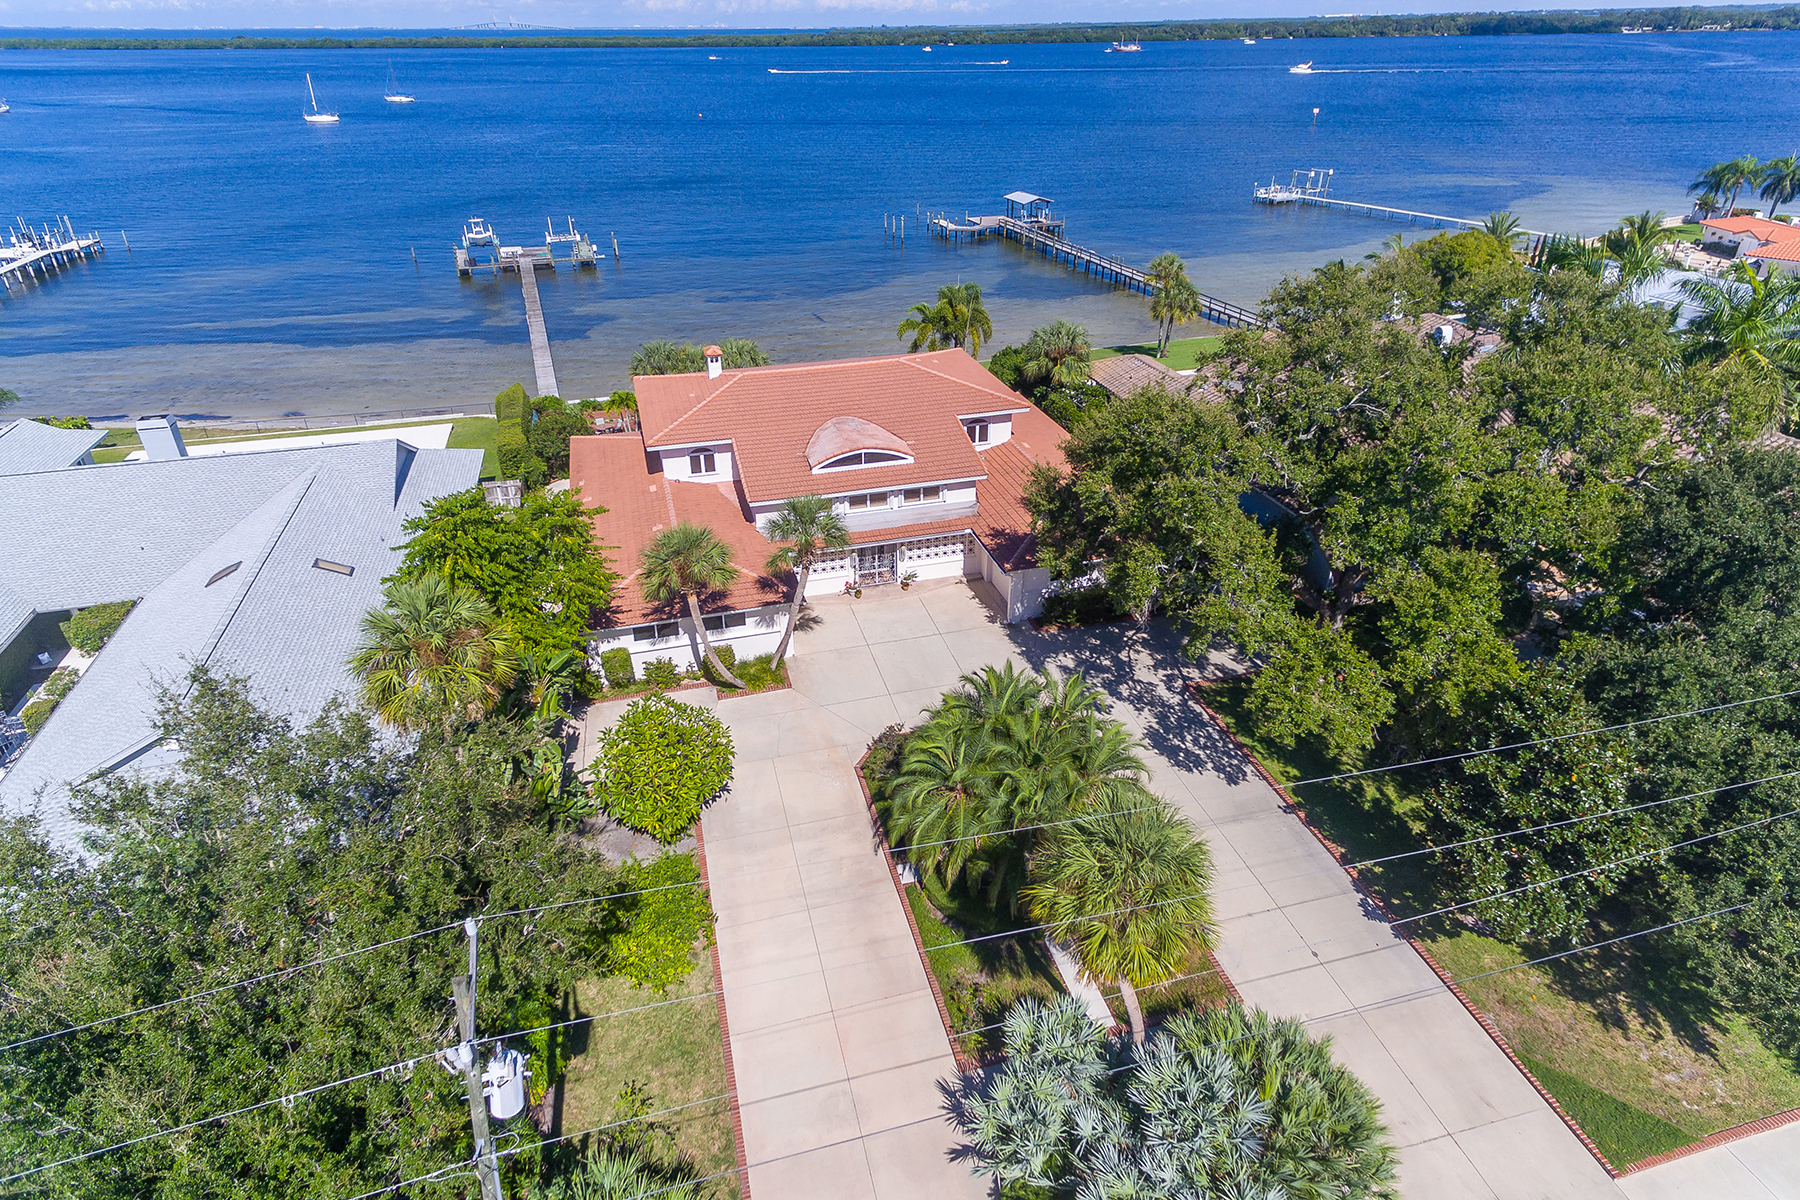 Single Family Homes for Sale at SHAW'S POINT 7412 Riverview Dr Bradenton, Florida 34209 United States